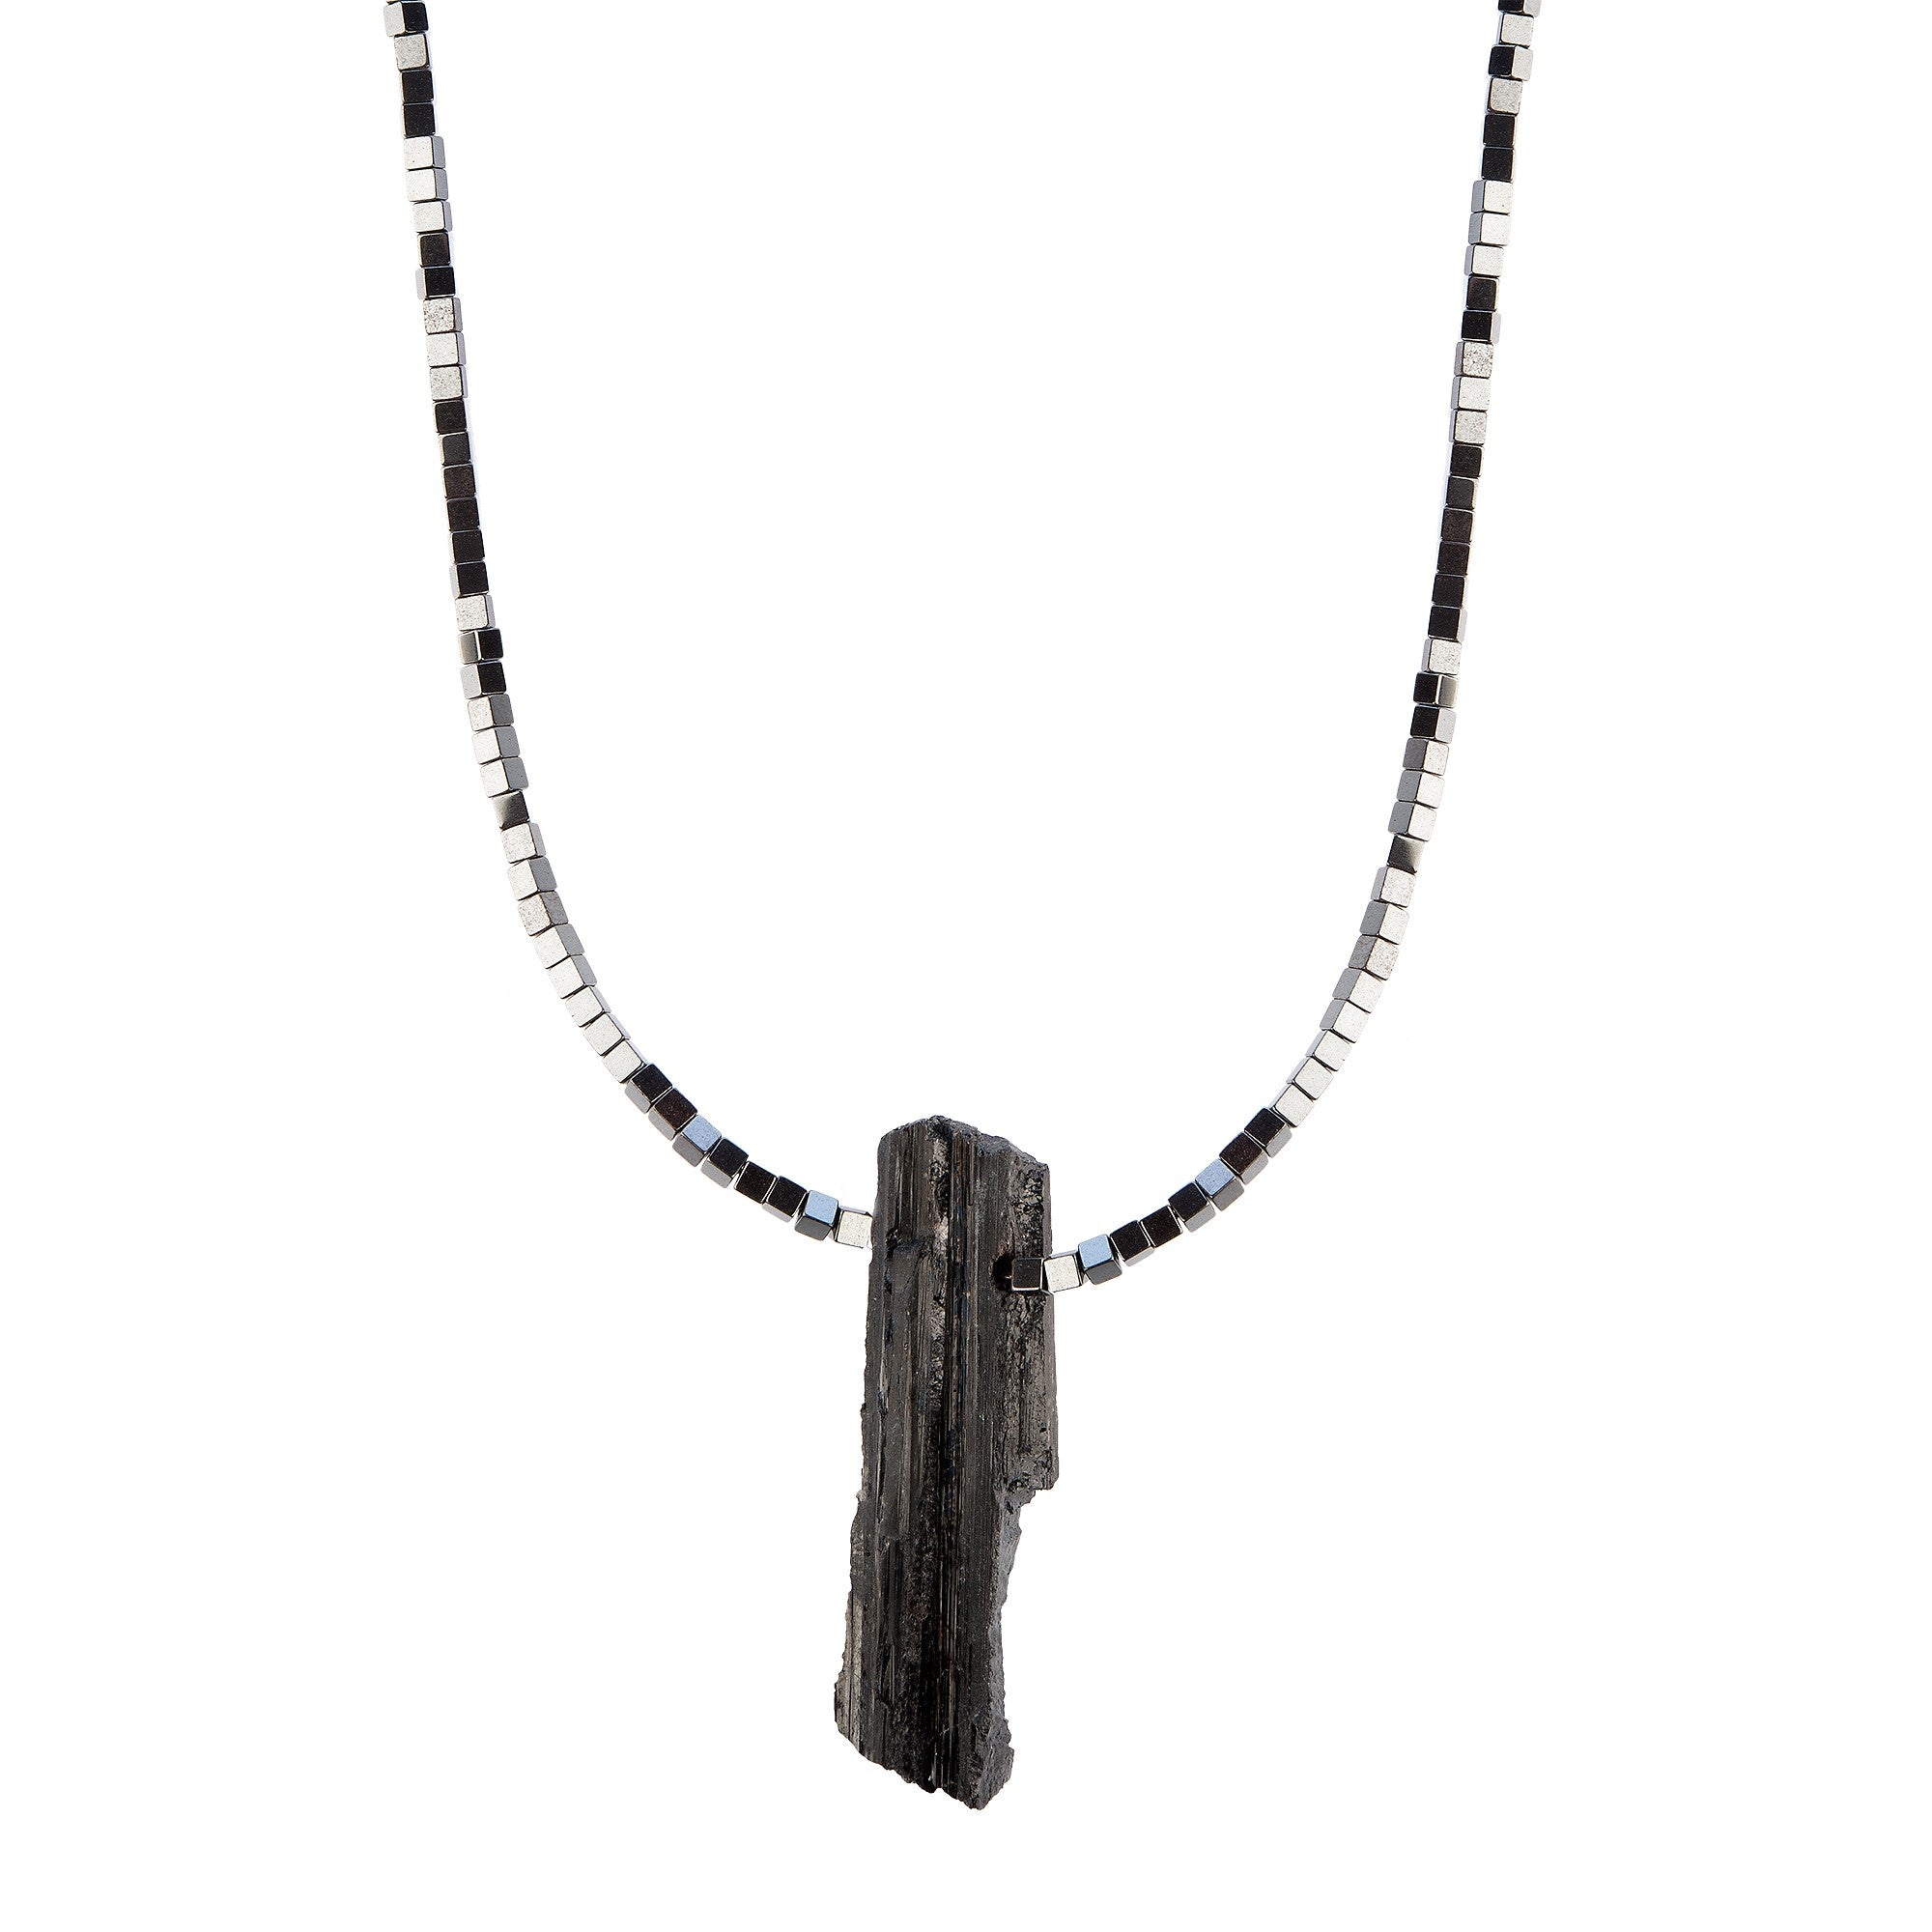 Necklace from Etnoart collection - EAN62-5